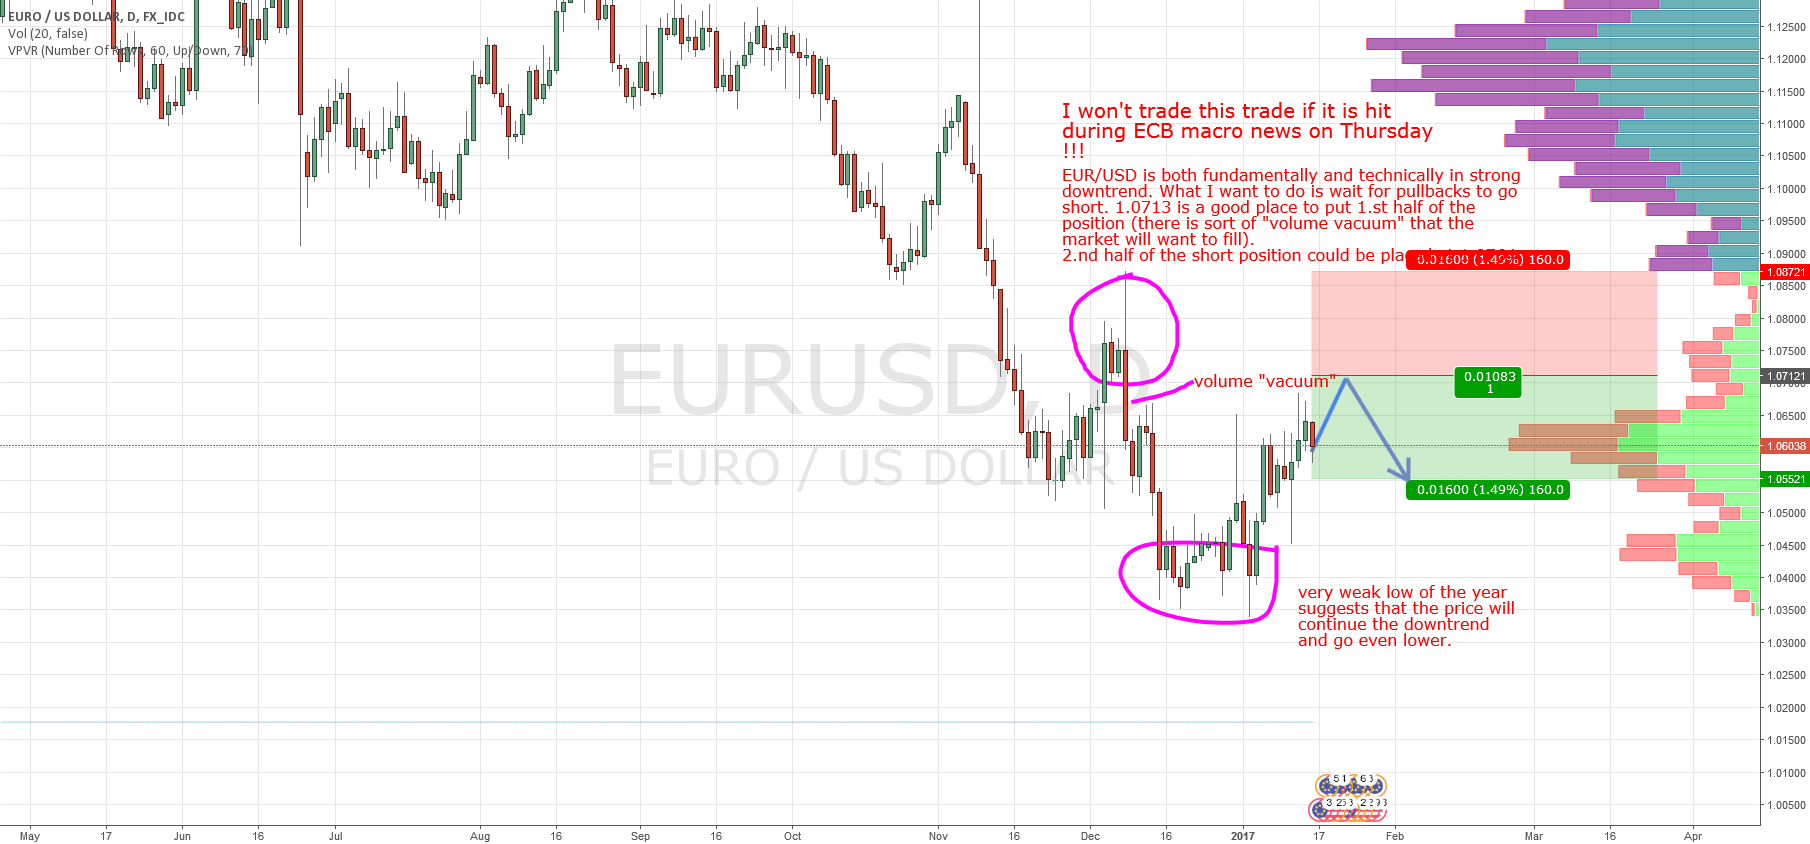 EUR/USD swing based on Market Profile and Price Action